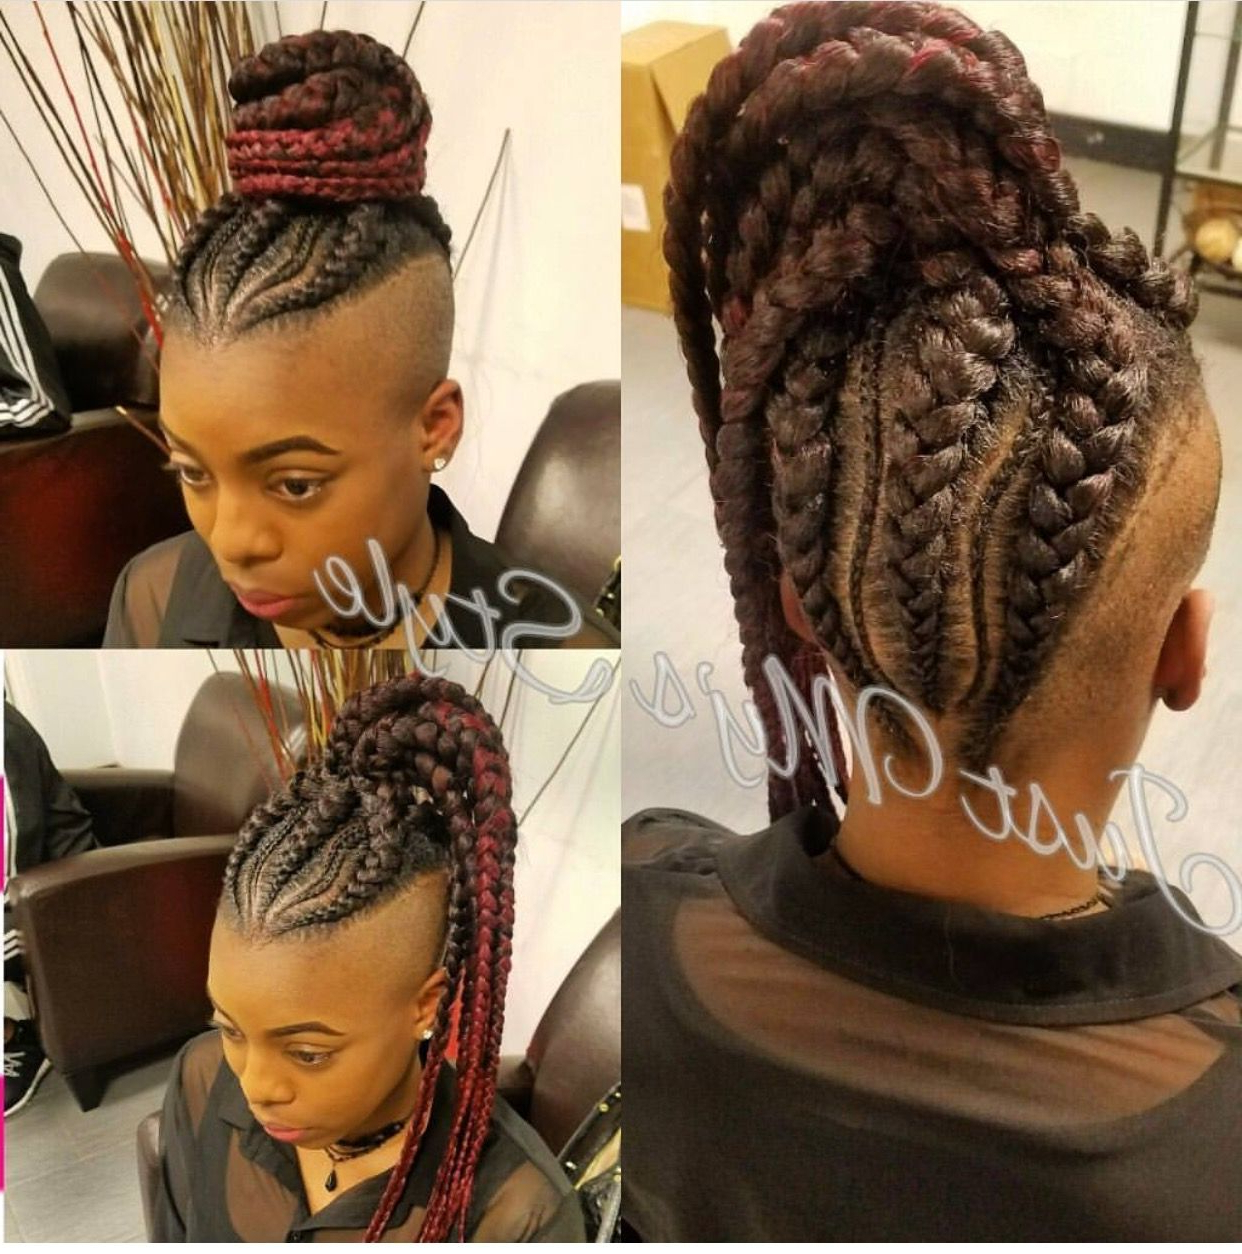 Well Known Side Shaved Cornrows Braids Hairstyles With Pinteshia Miller On Bonus Beauty Is Your Hair Do (View 20 of 21)